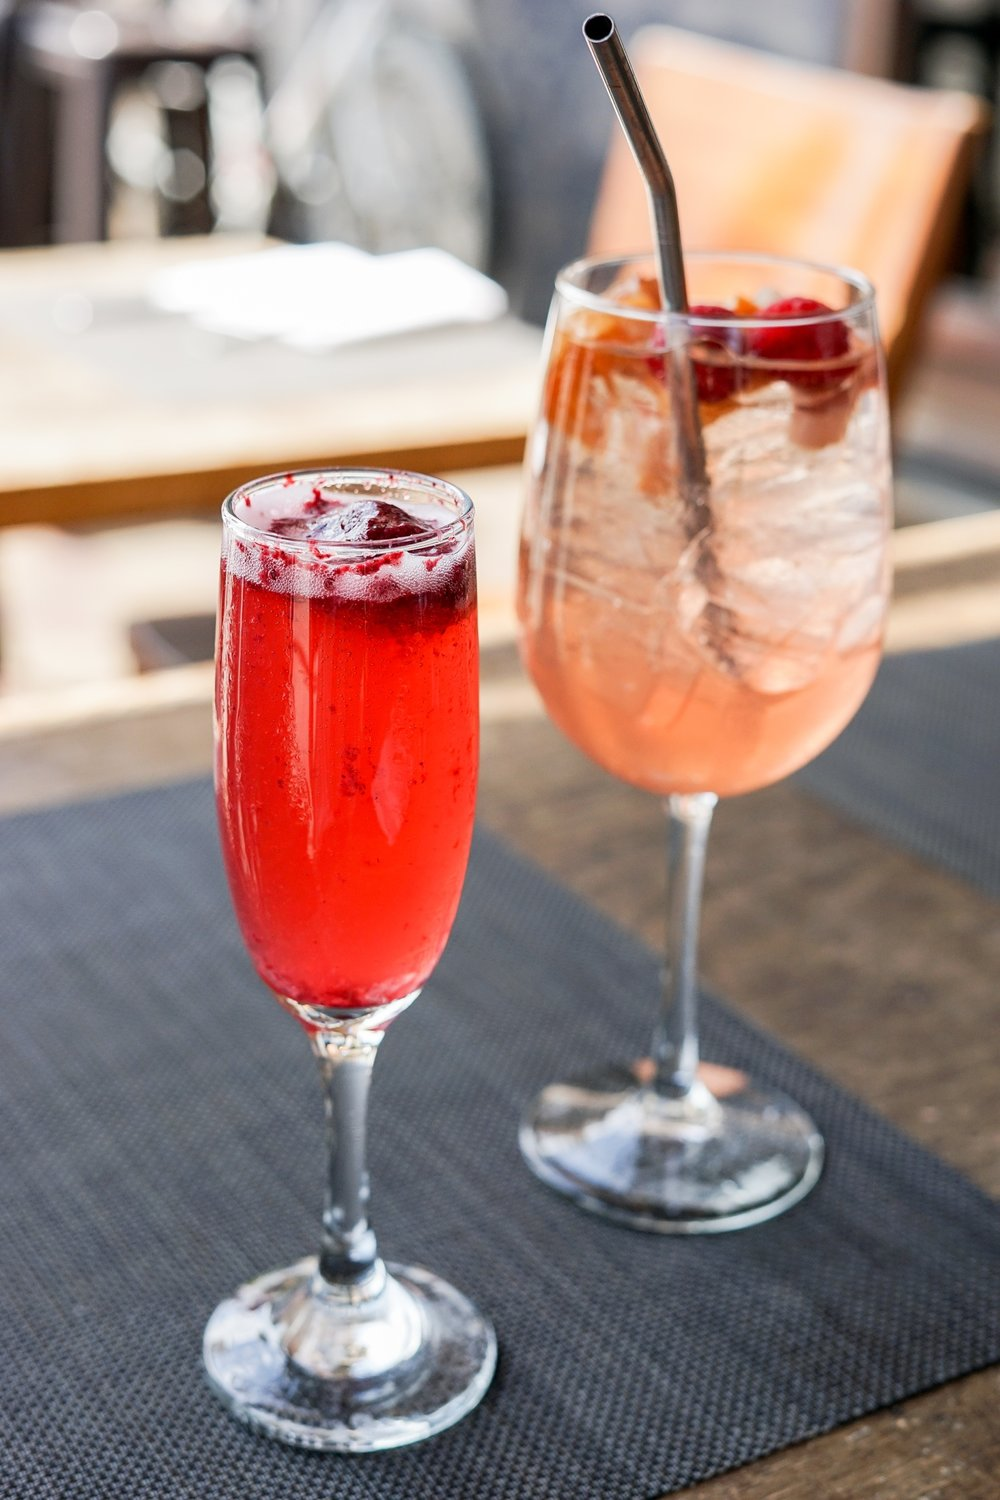 Prosecco Fizz (front) and Seasonal Sangria (rear) at Akasha Restaurant, Culver City, CA